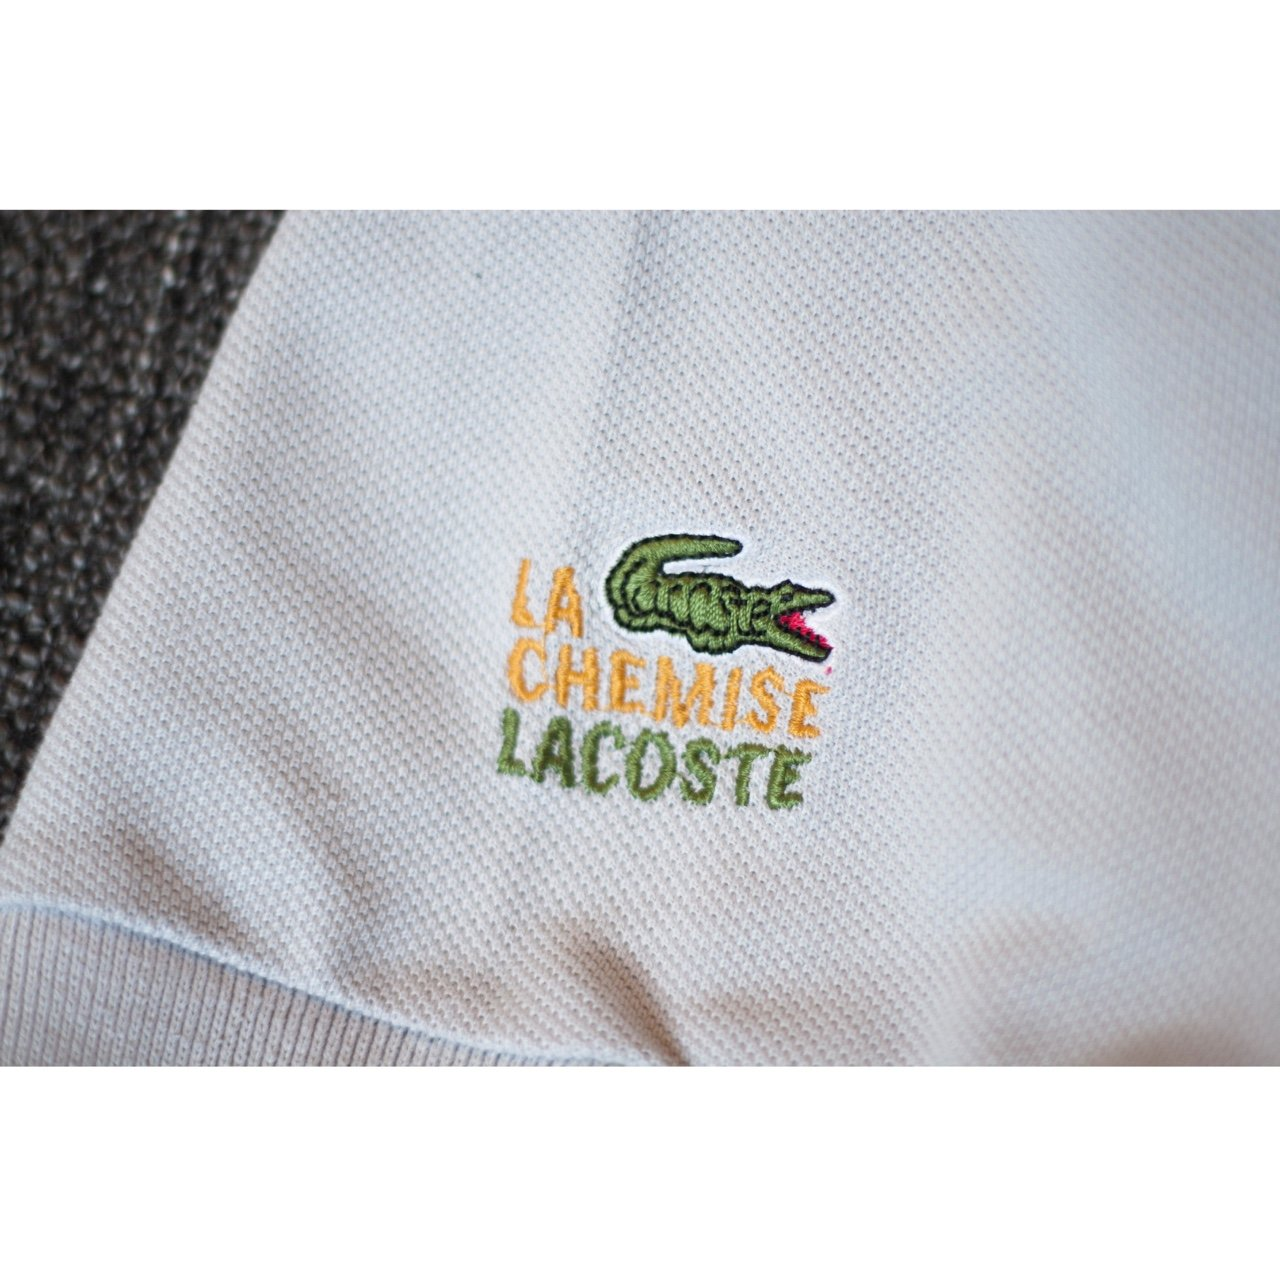 d654548fde257 Price drop! Vintage Chemise Lacoste Polo shirt. In great XXL - Depop